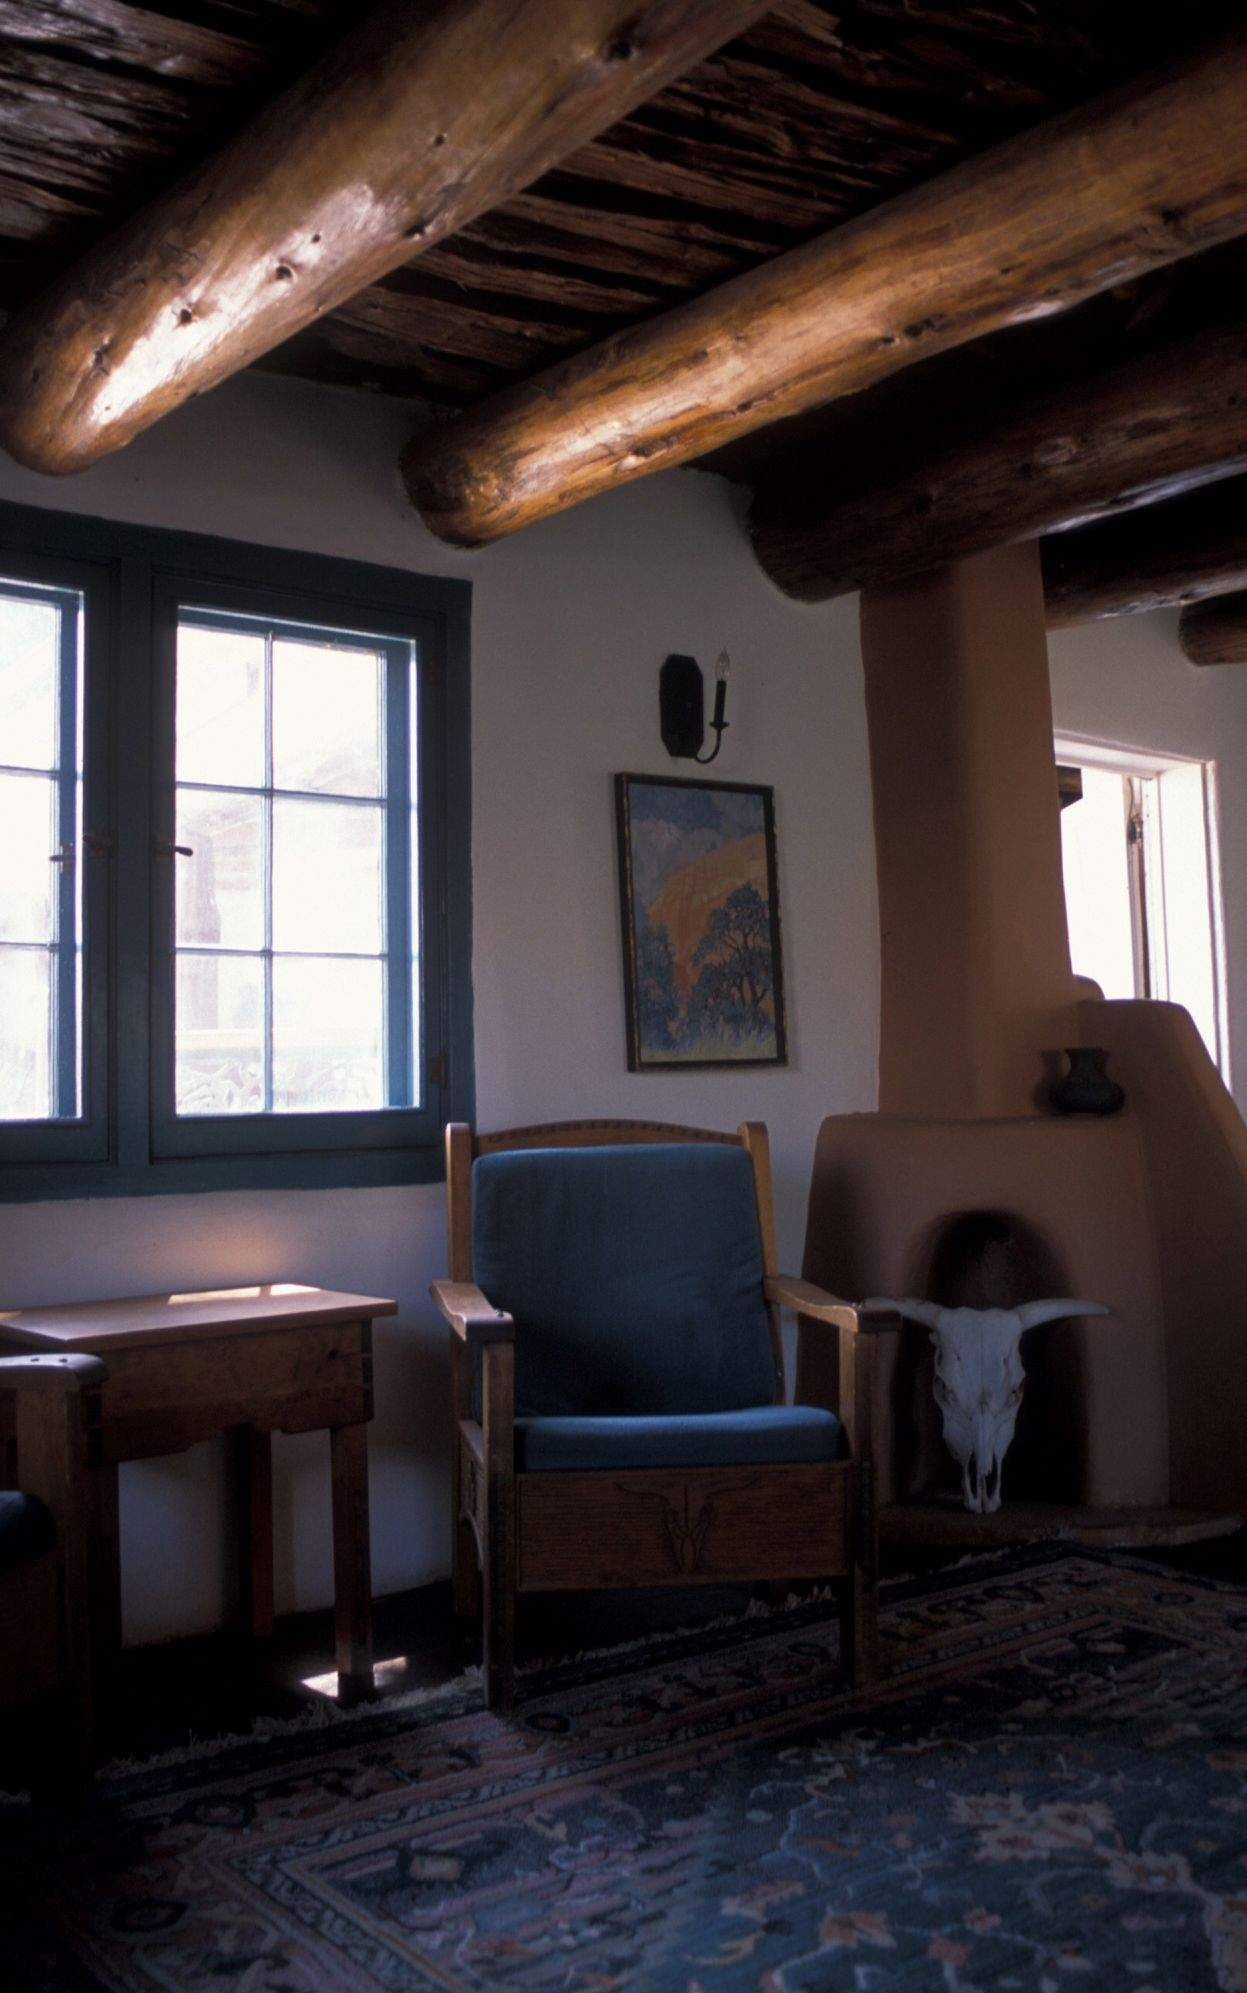 The Interior Of Ghost House In The Restored Section Features  Artisan Crafted Furniture And Original Ponderosa Pine Beams Supporting A  Ceiling Of Cut Latilla ...